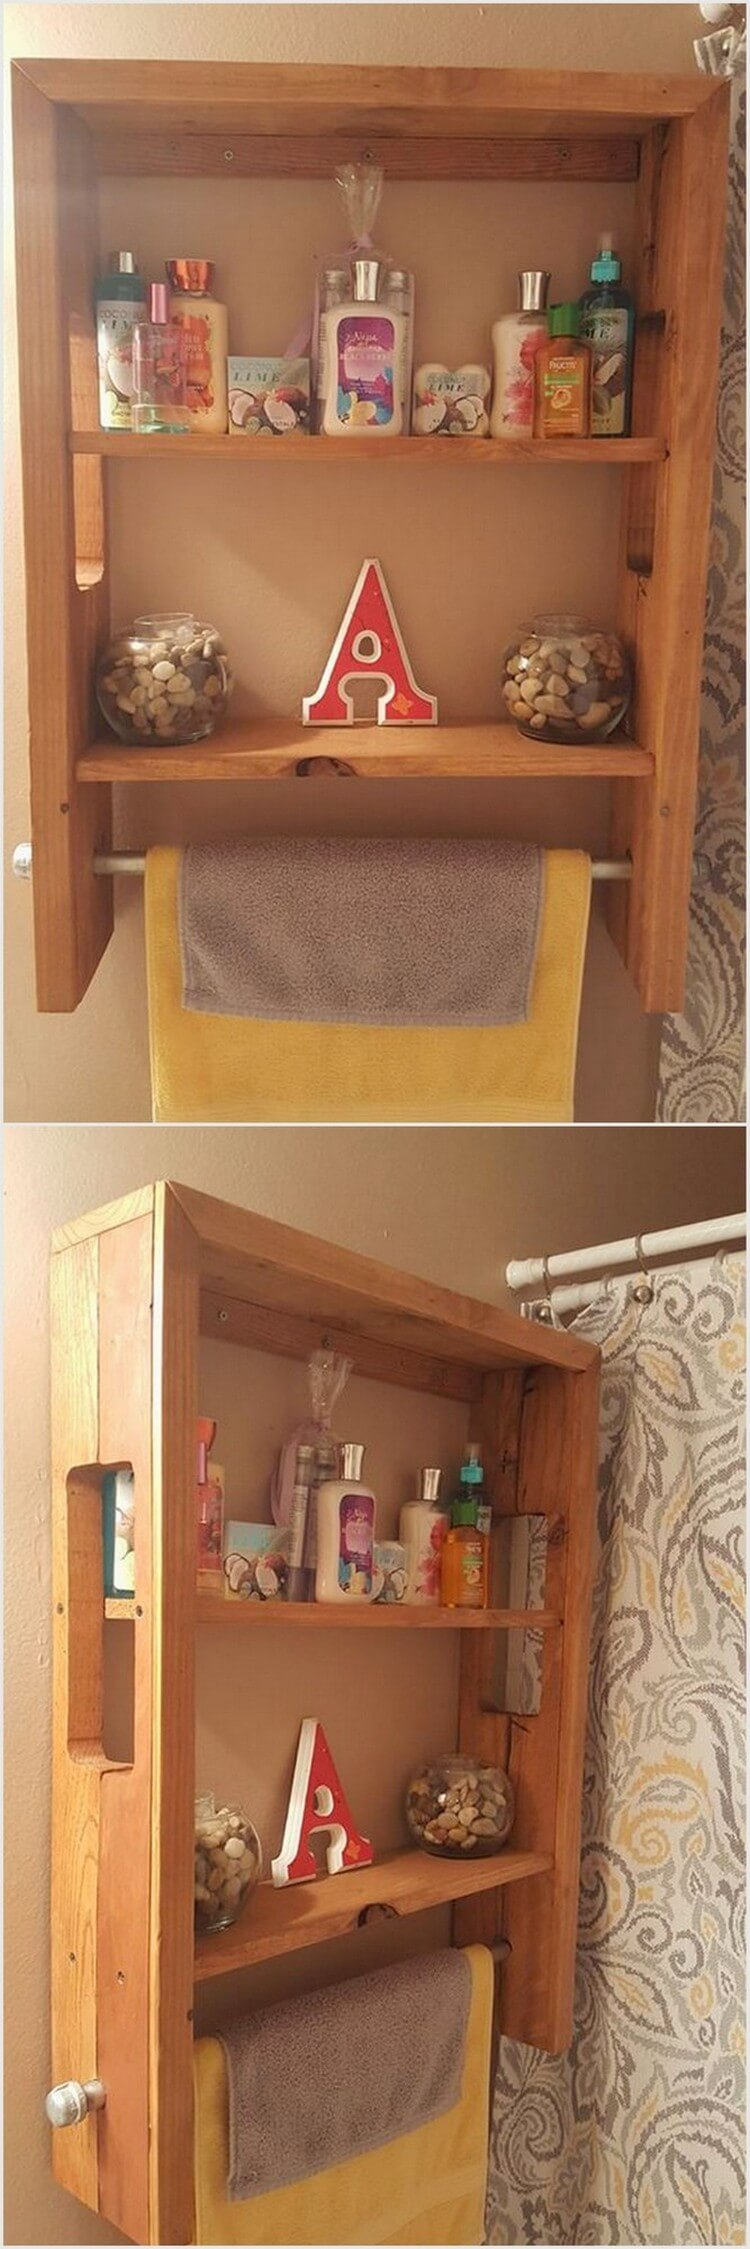 Pallet Bathroom Shelf Towel Rack